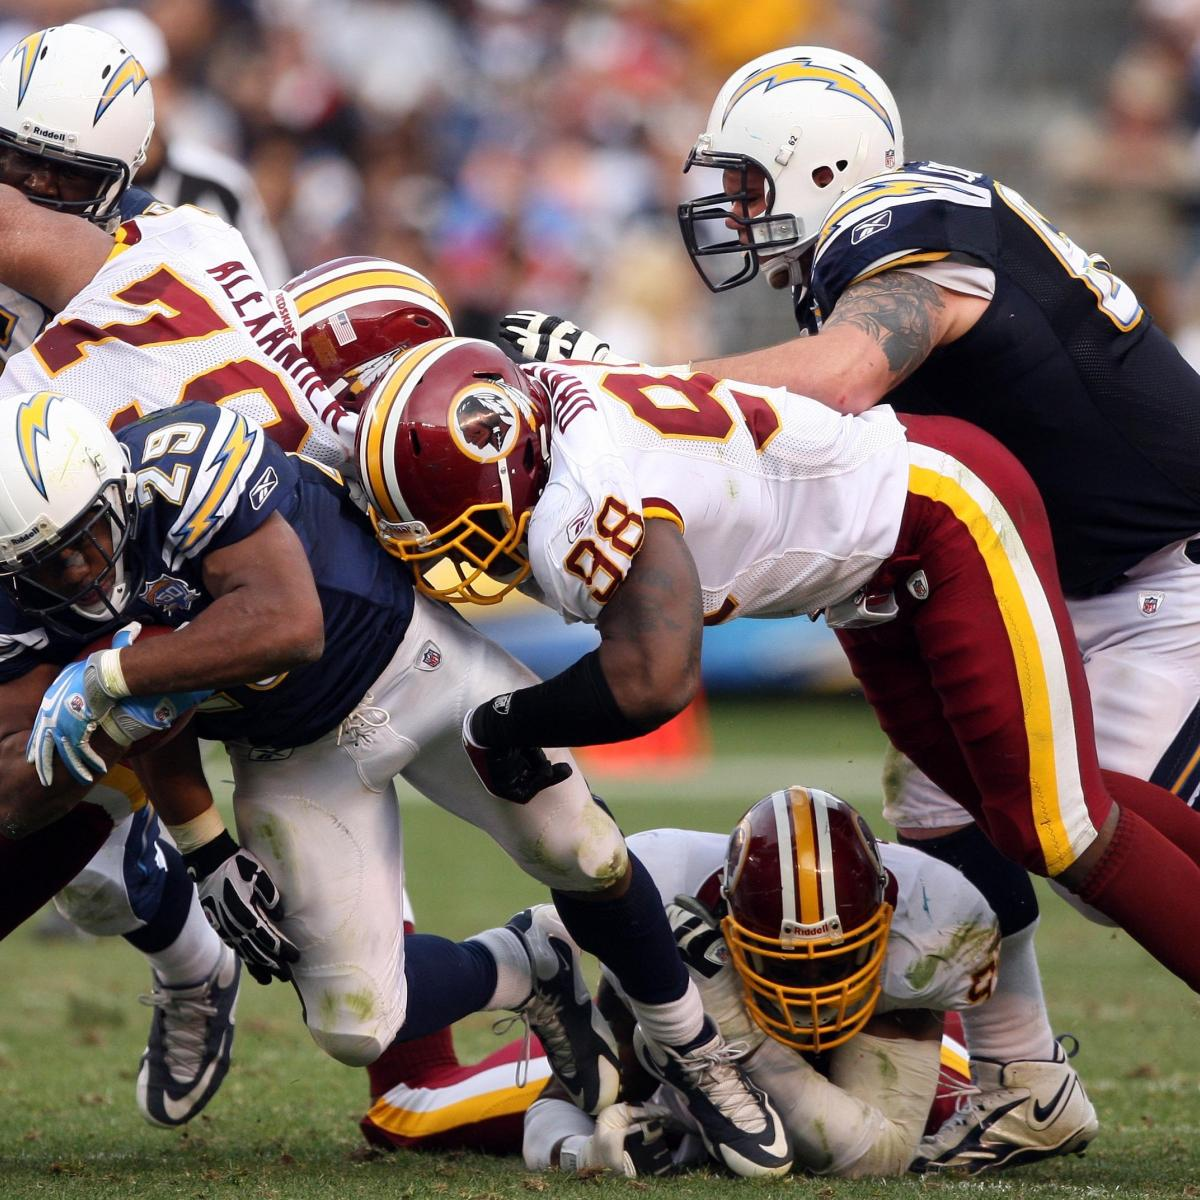 San Diego Chargers Coaches: San Diego Chargers Vs. Washington Redskins: Breaking Down